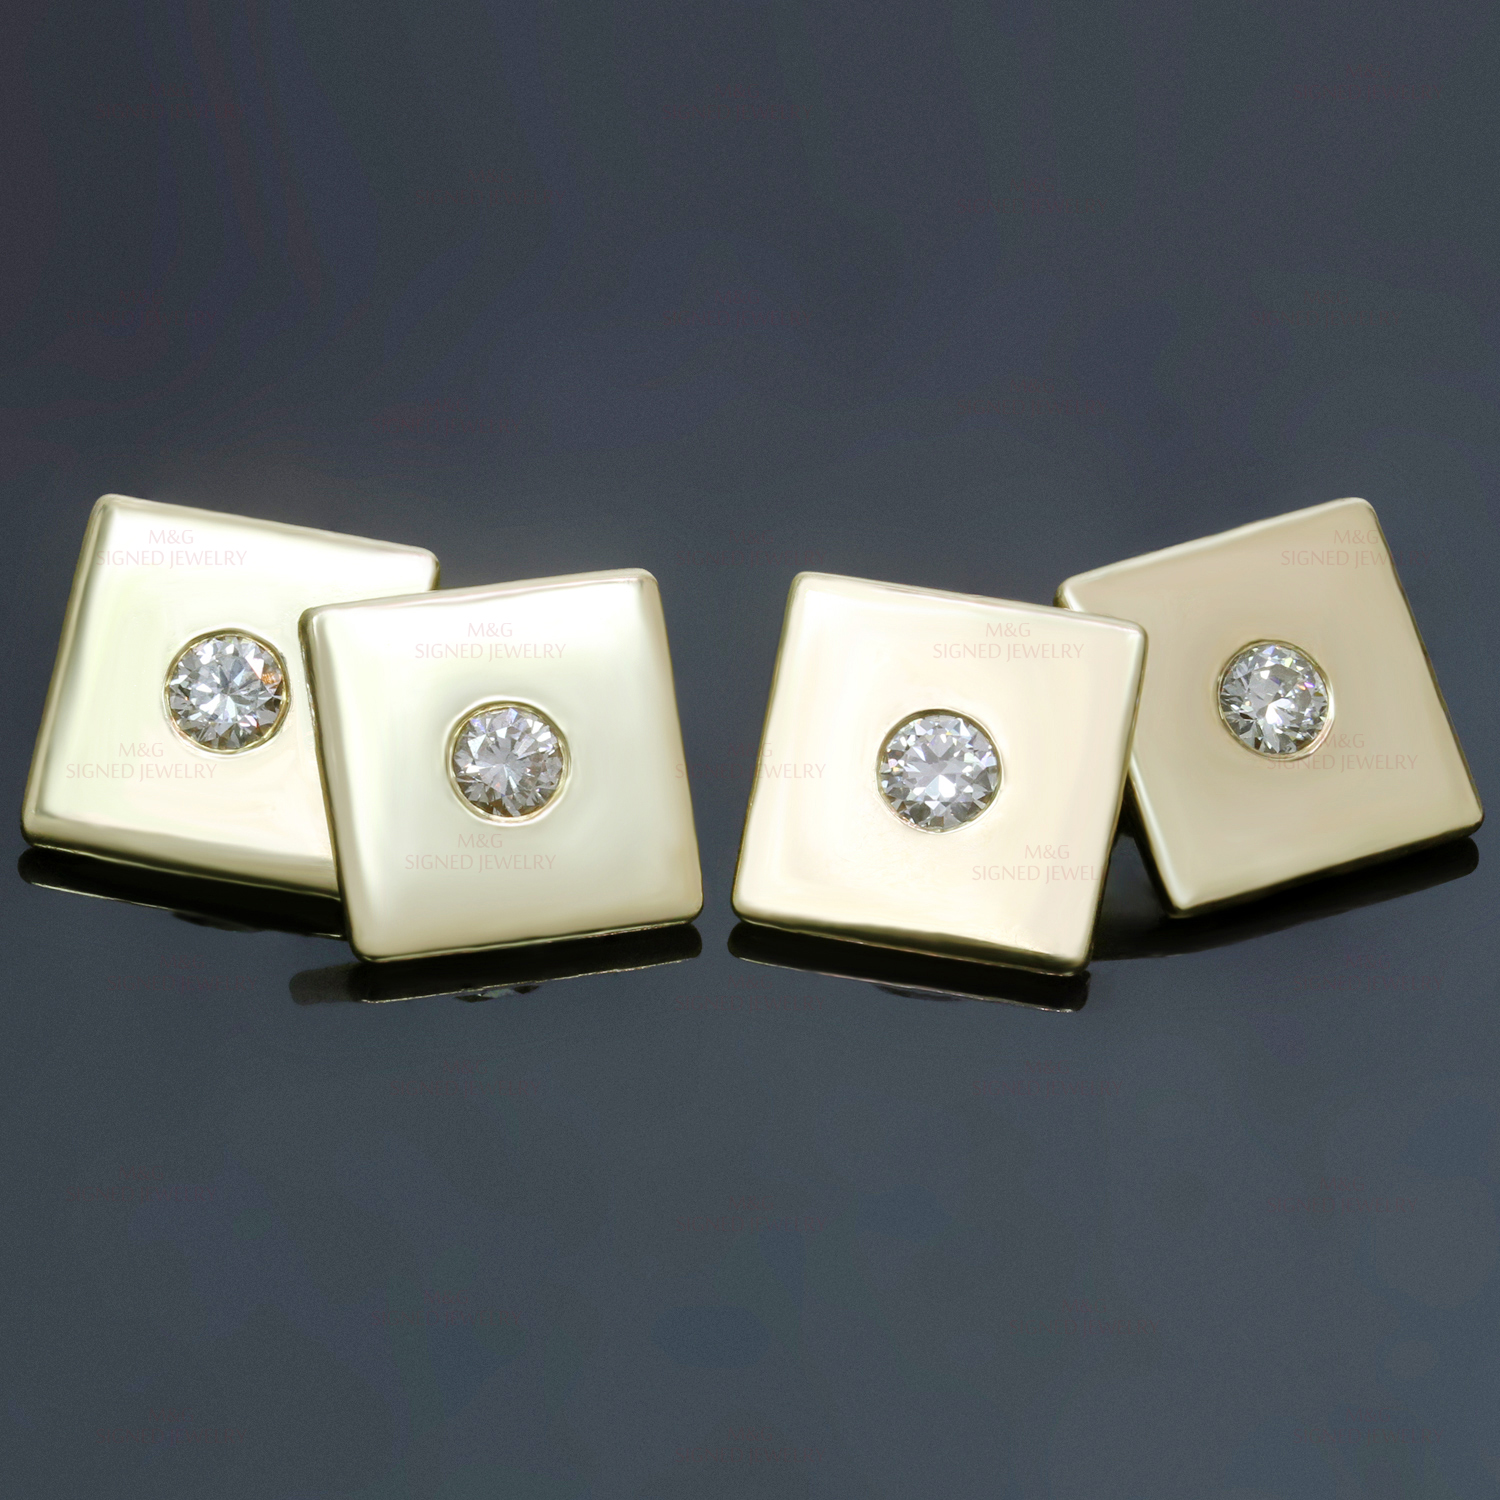 TIFFANY & CO. 1940s Diamond 14k Yellow Gold Square Cufflinks